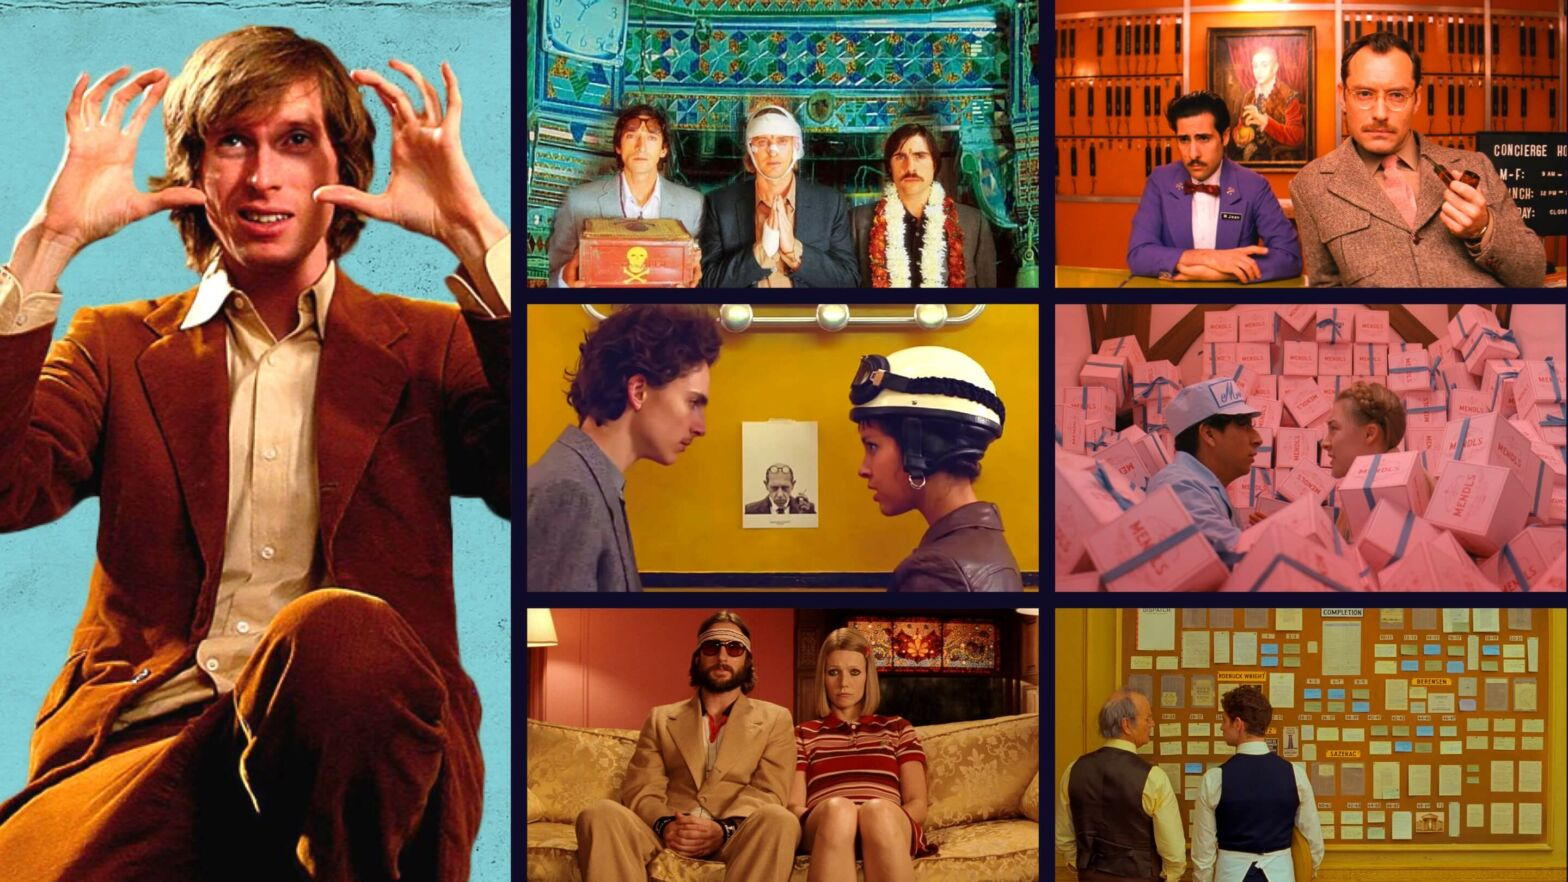 Wes Anderson Style Explained - Style Guide to the Wes Anderson Aesthetic and Film Style